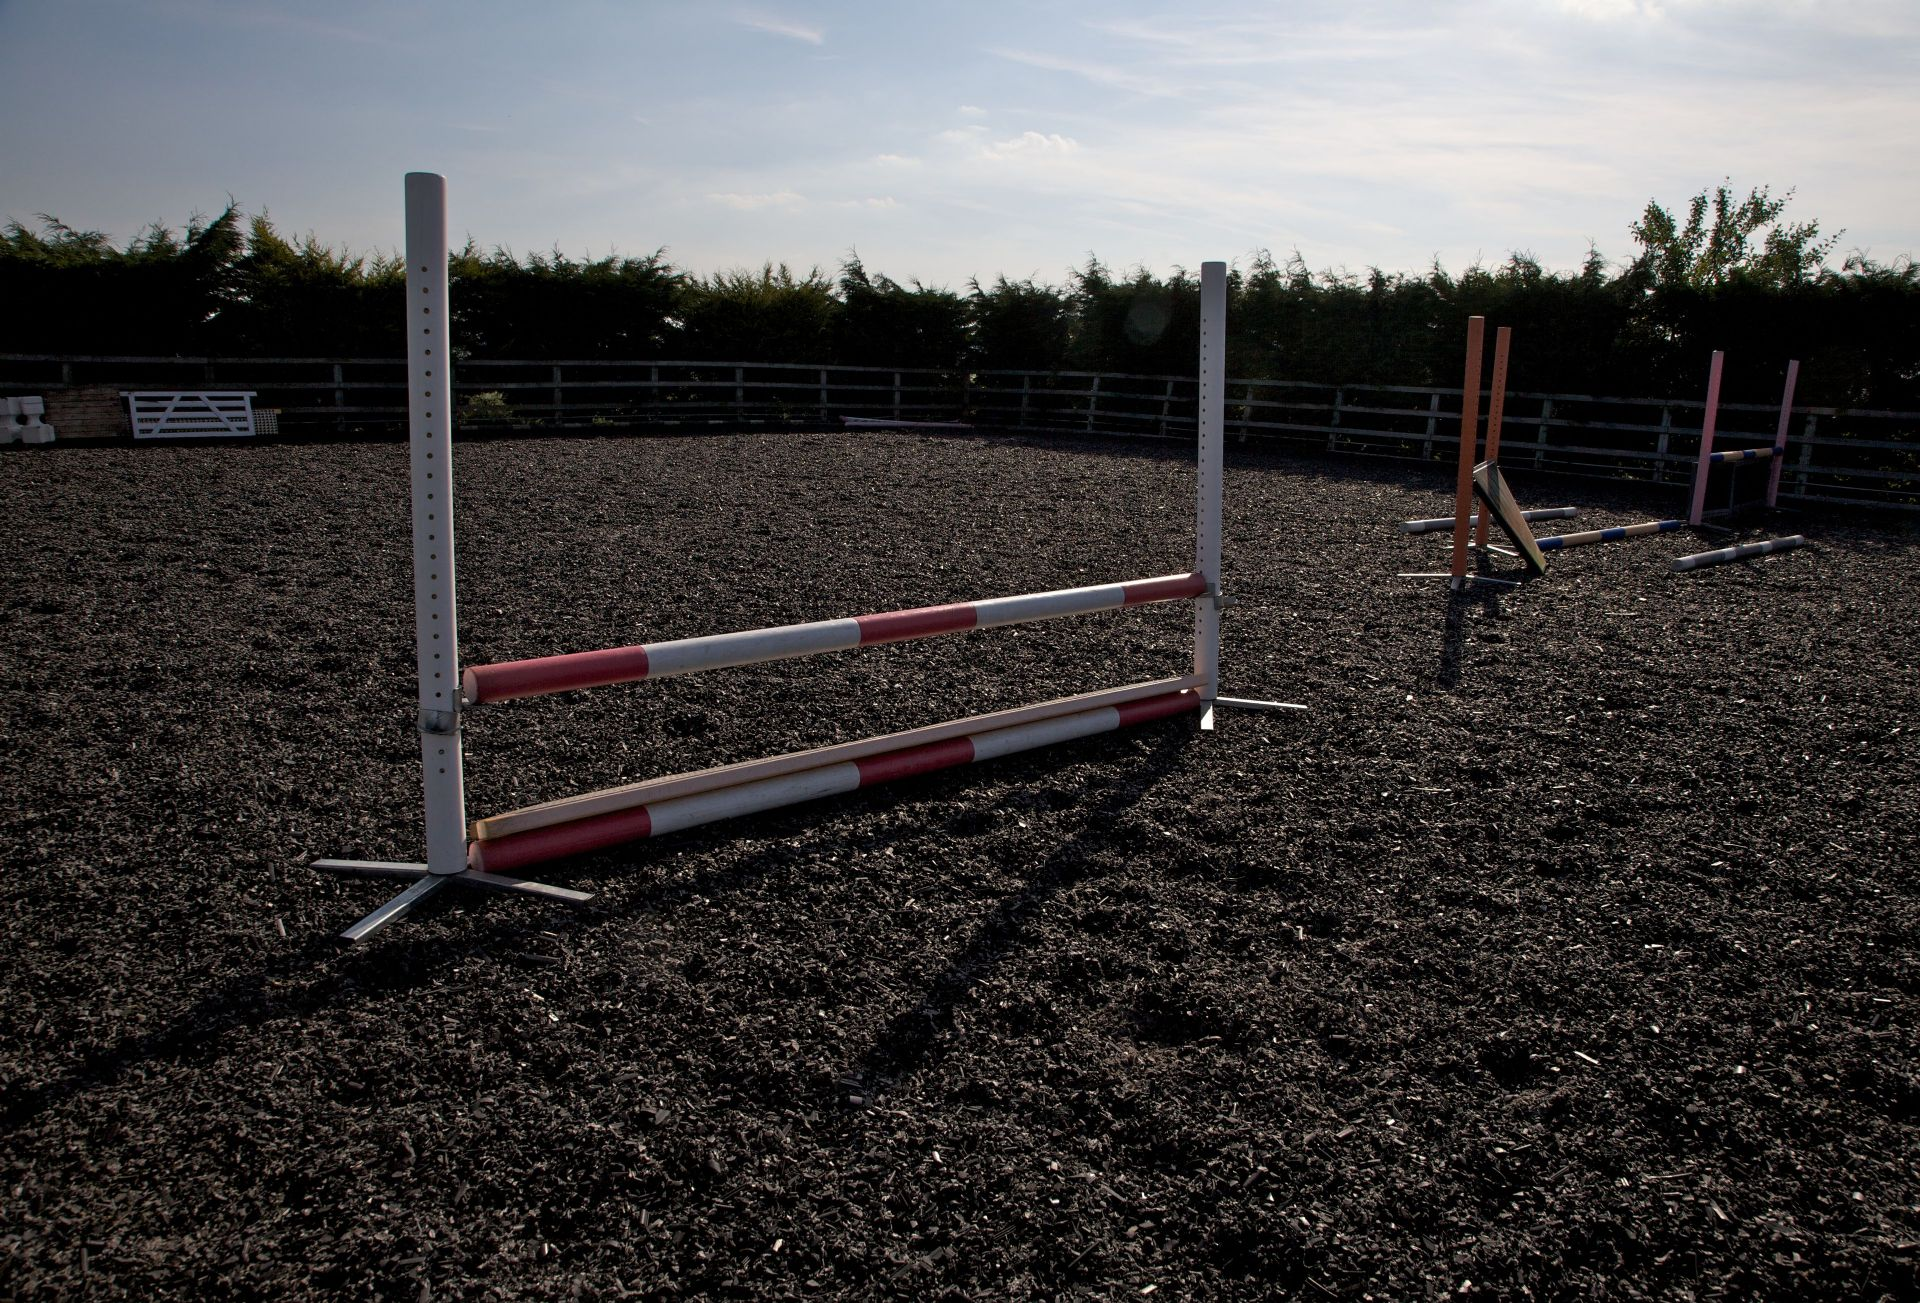 Stabling available upon request (charges may apply)